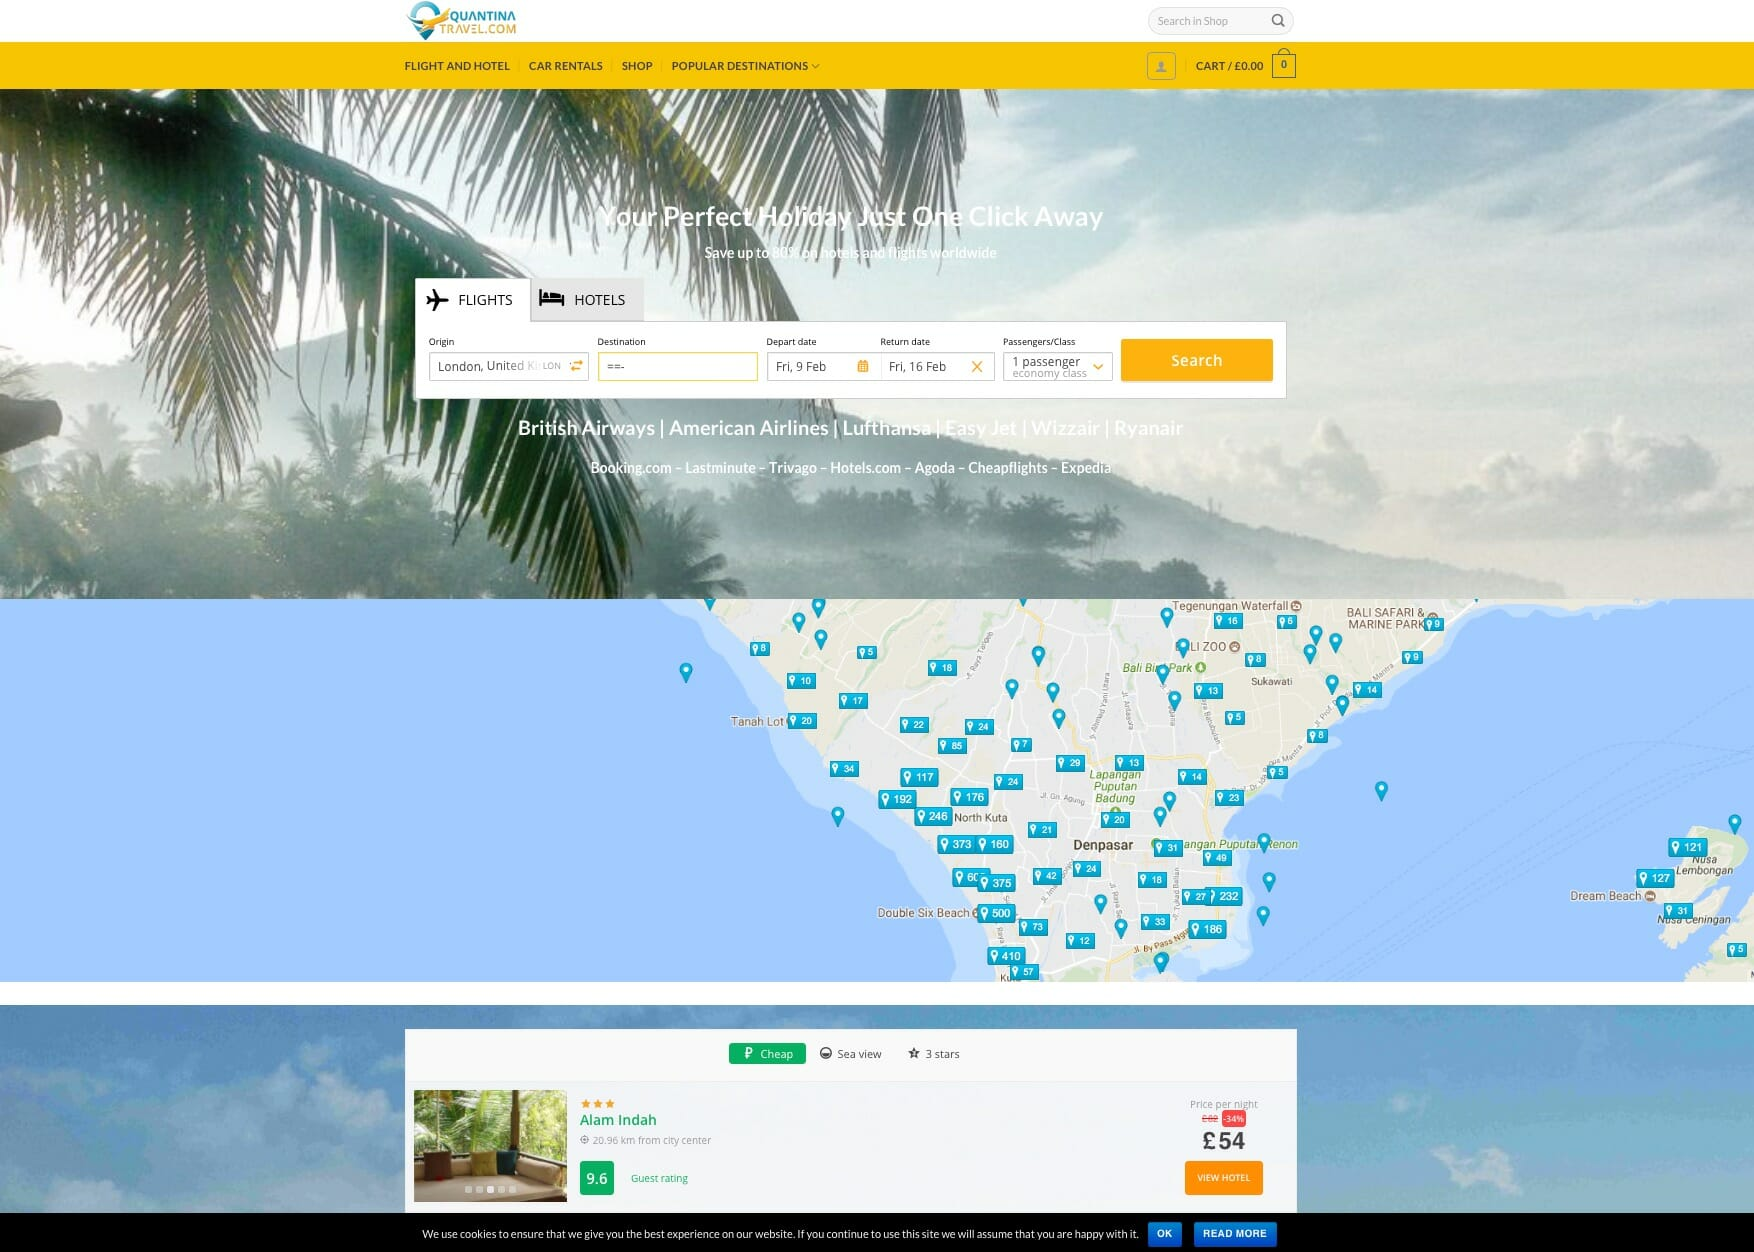 Travel Search Website Design